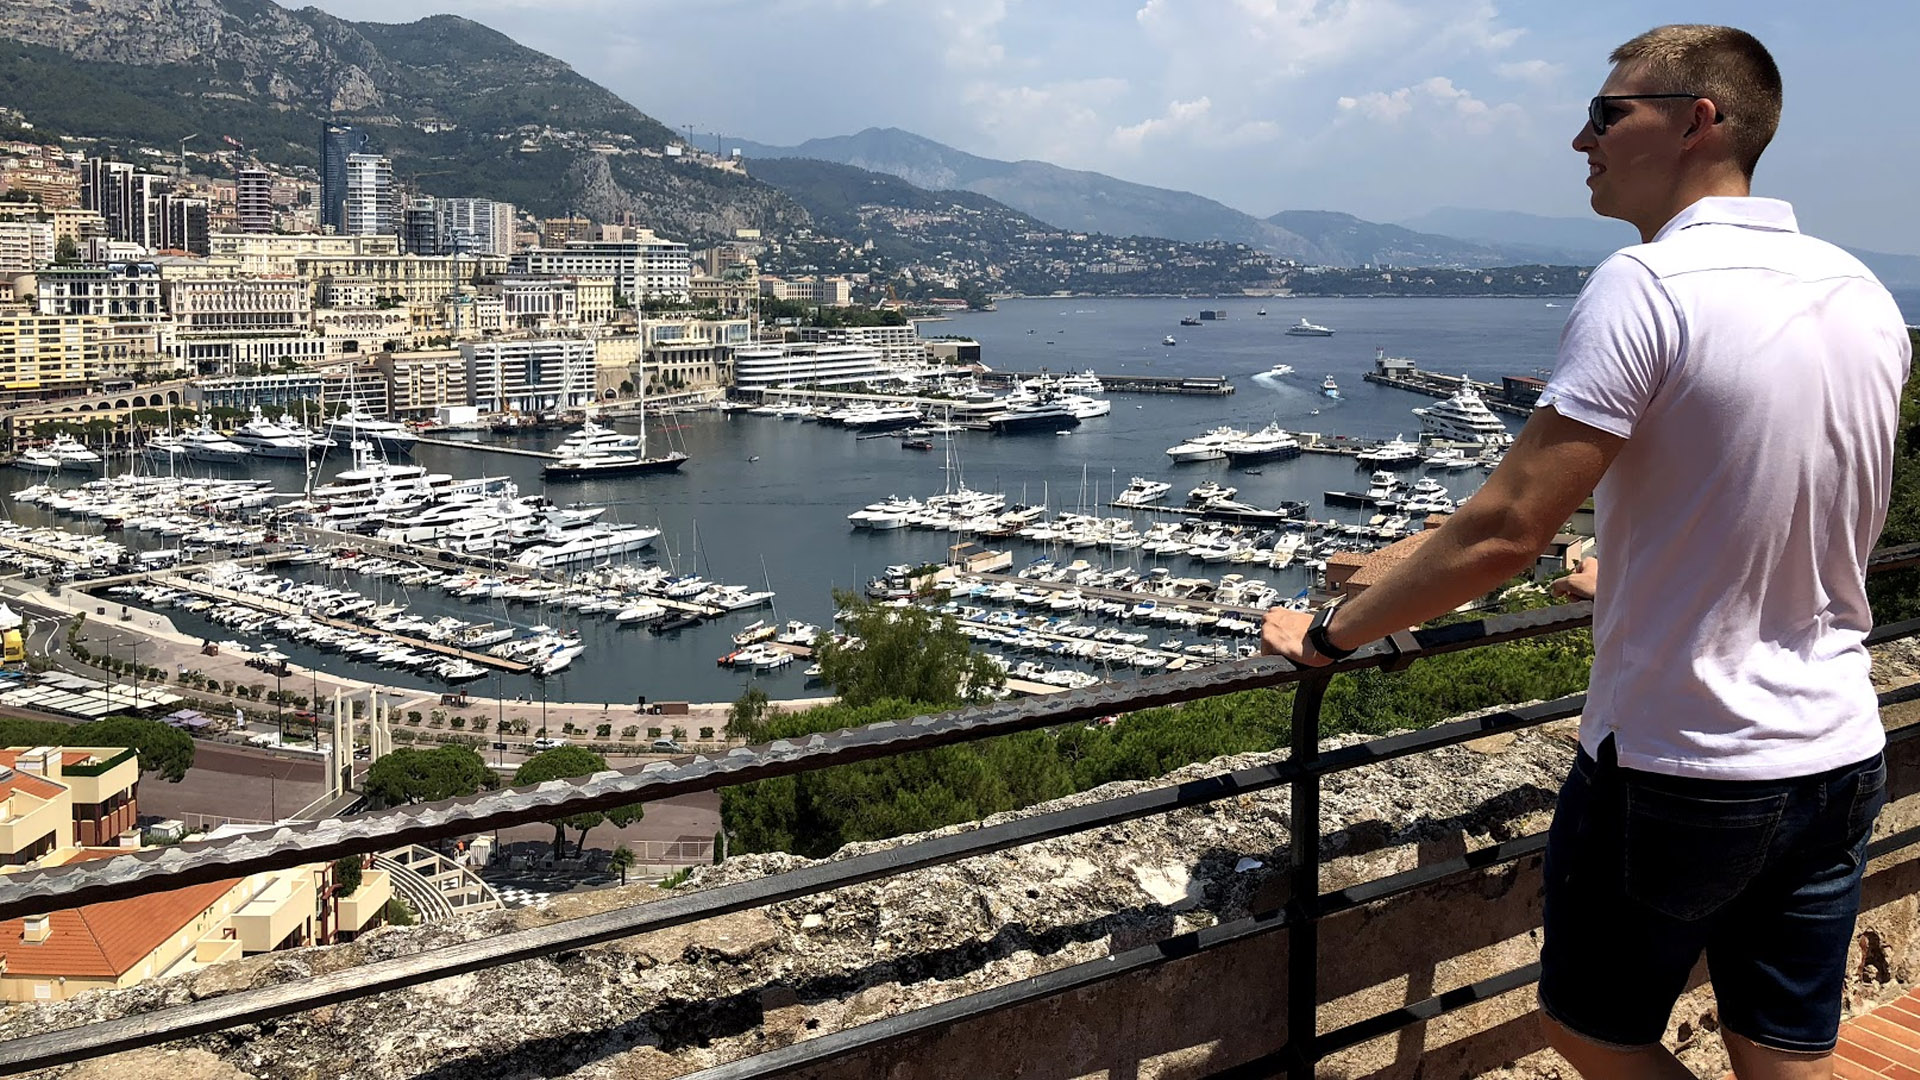 Terrasse Du Port Monaco Top Things To Do In Monaco Monte Carlo Beaches And More